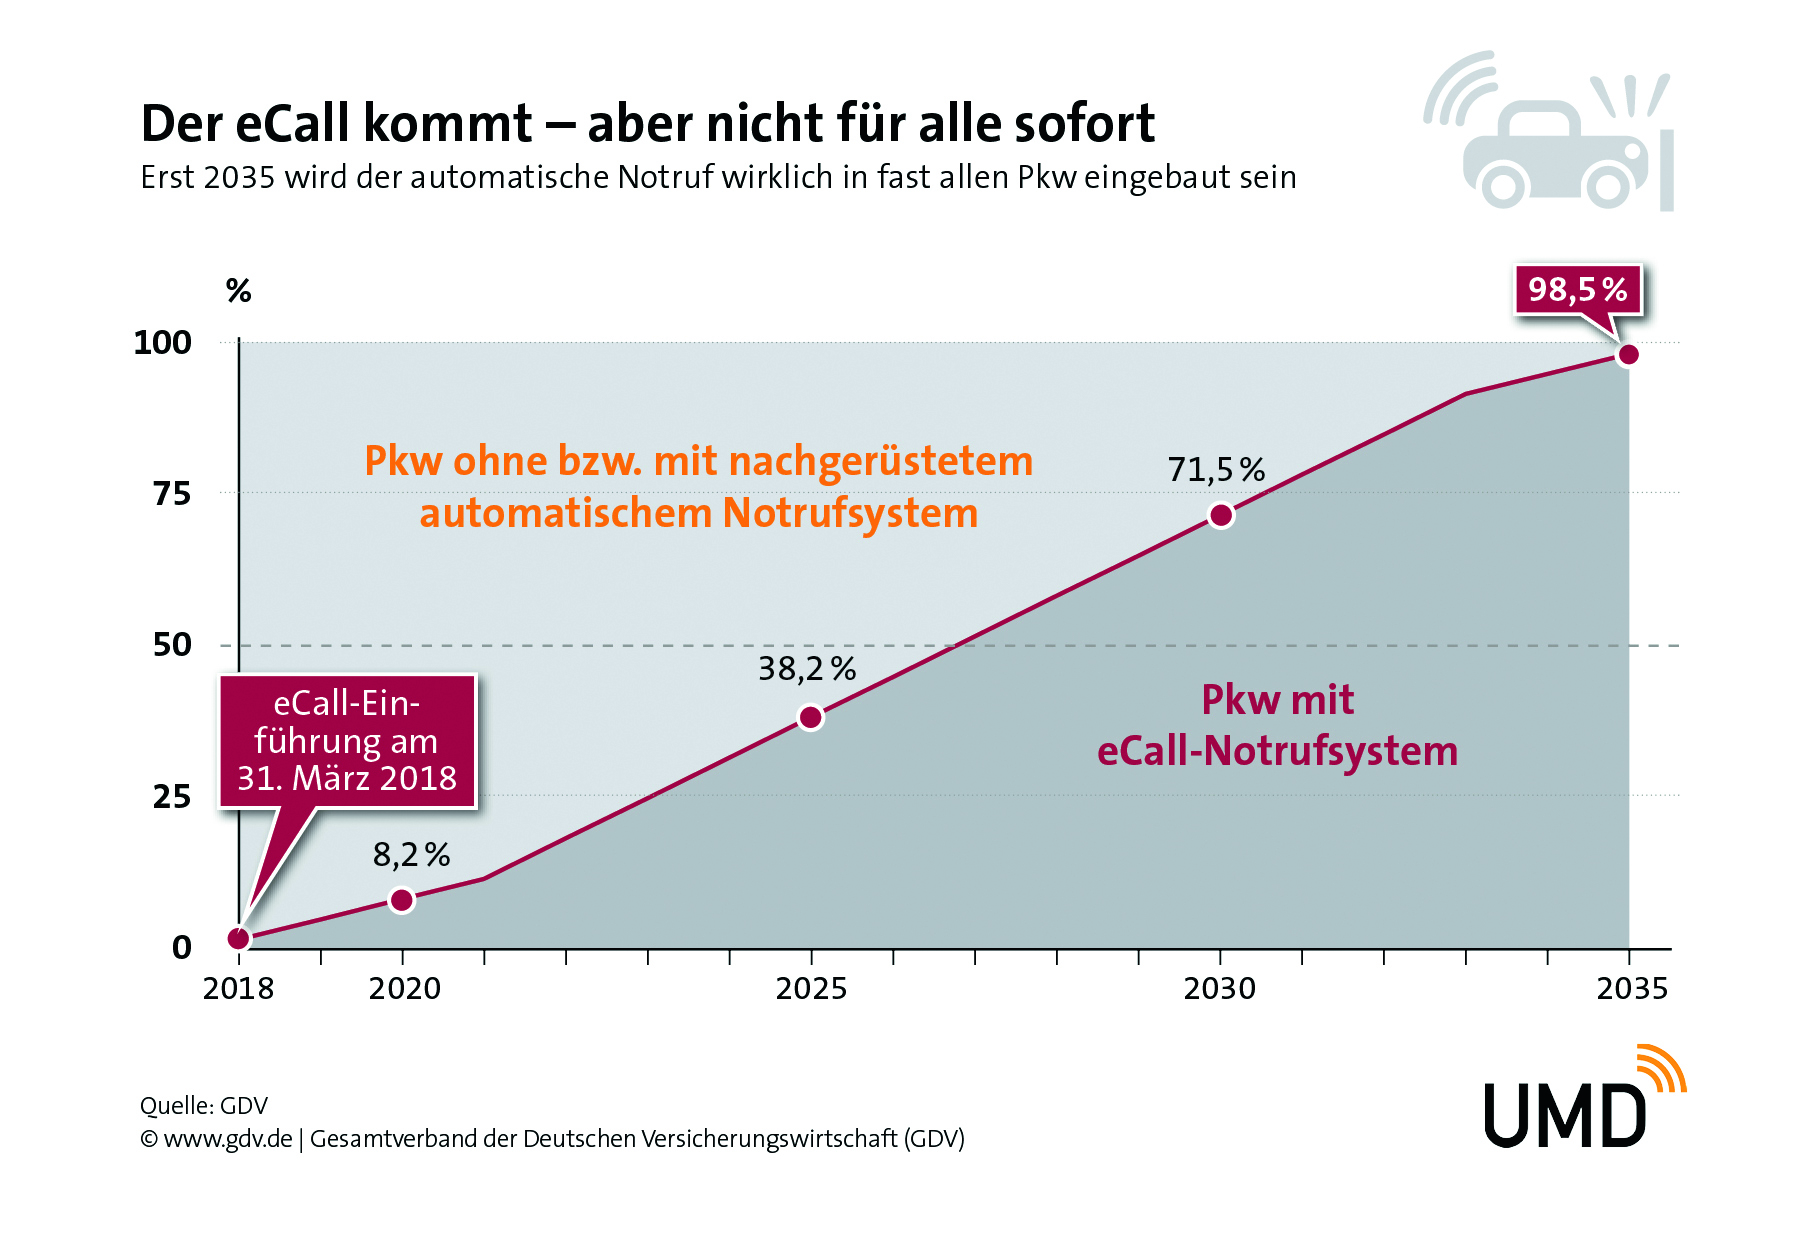 Number of permanently installed eCall systems in Germany starting March 31st,  2018 according to calculations by the German Insurance Association (GDV)